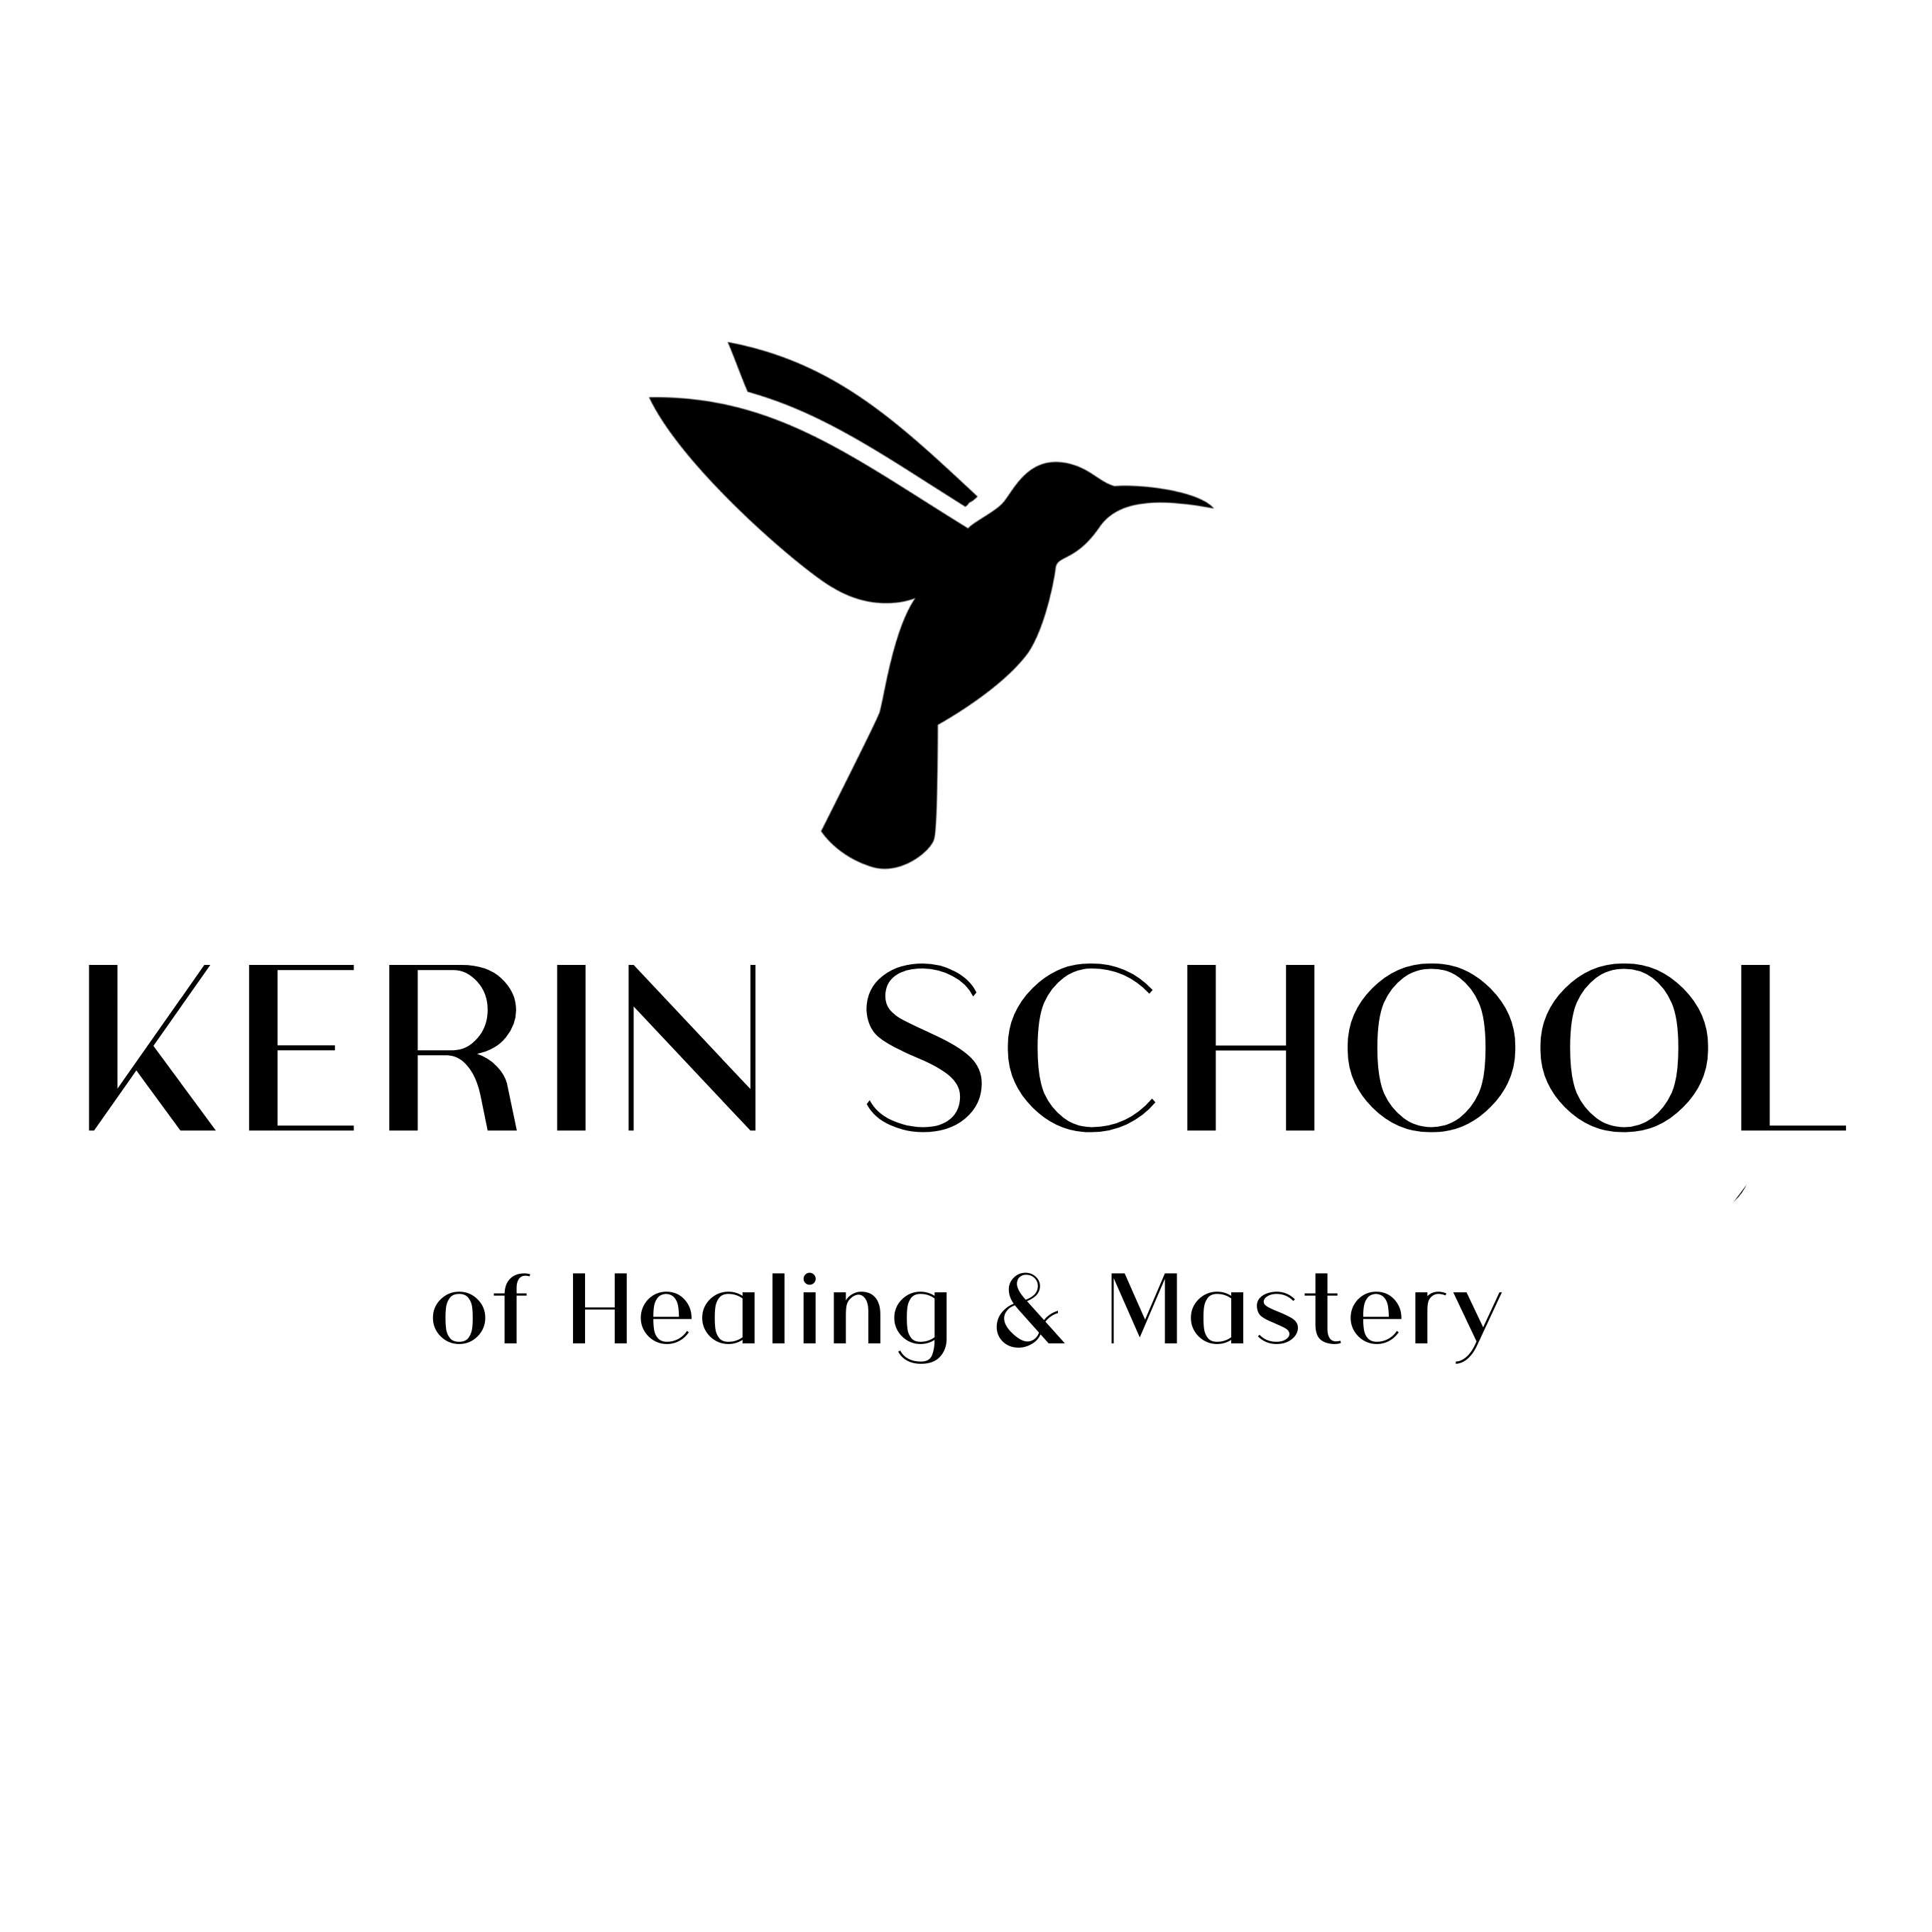 Kerin School of Healing & Mastery